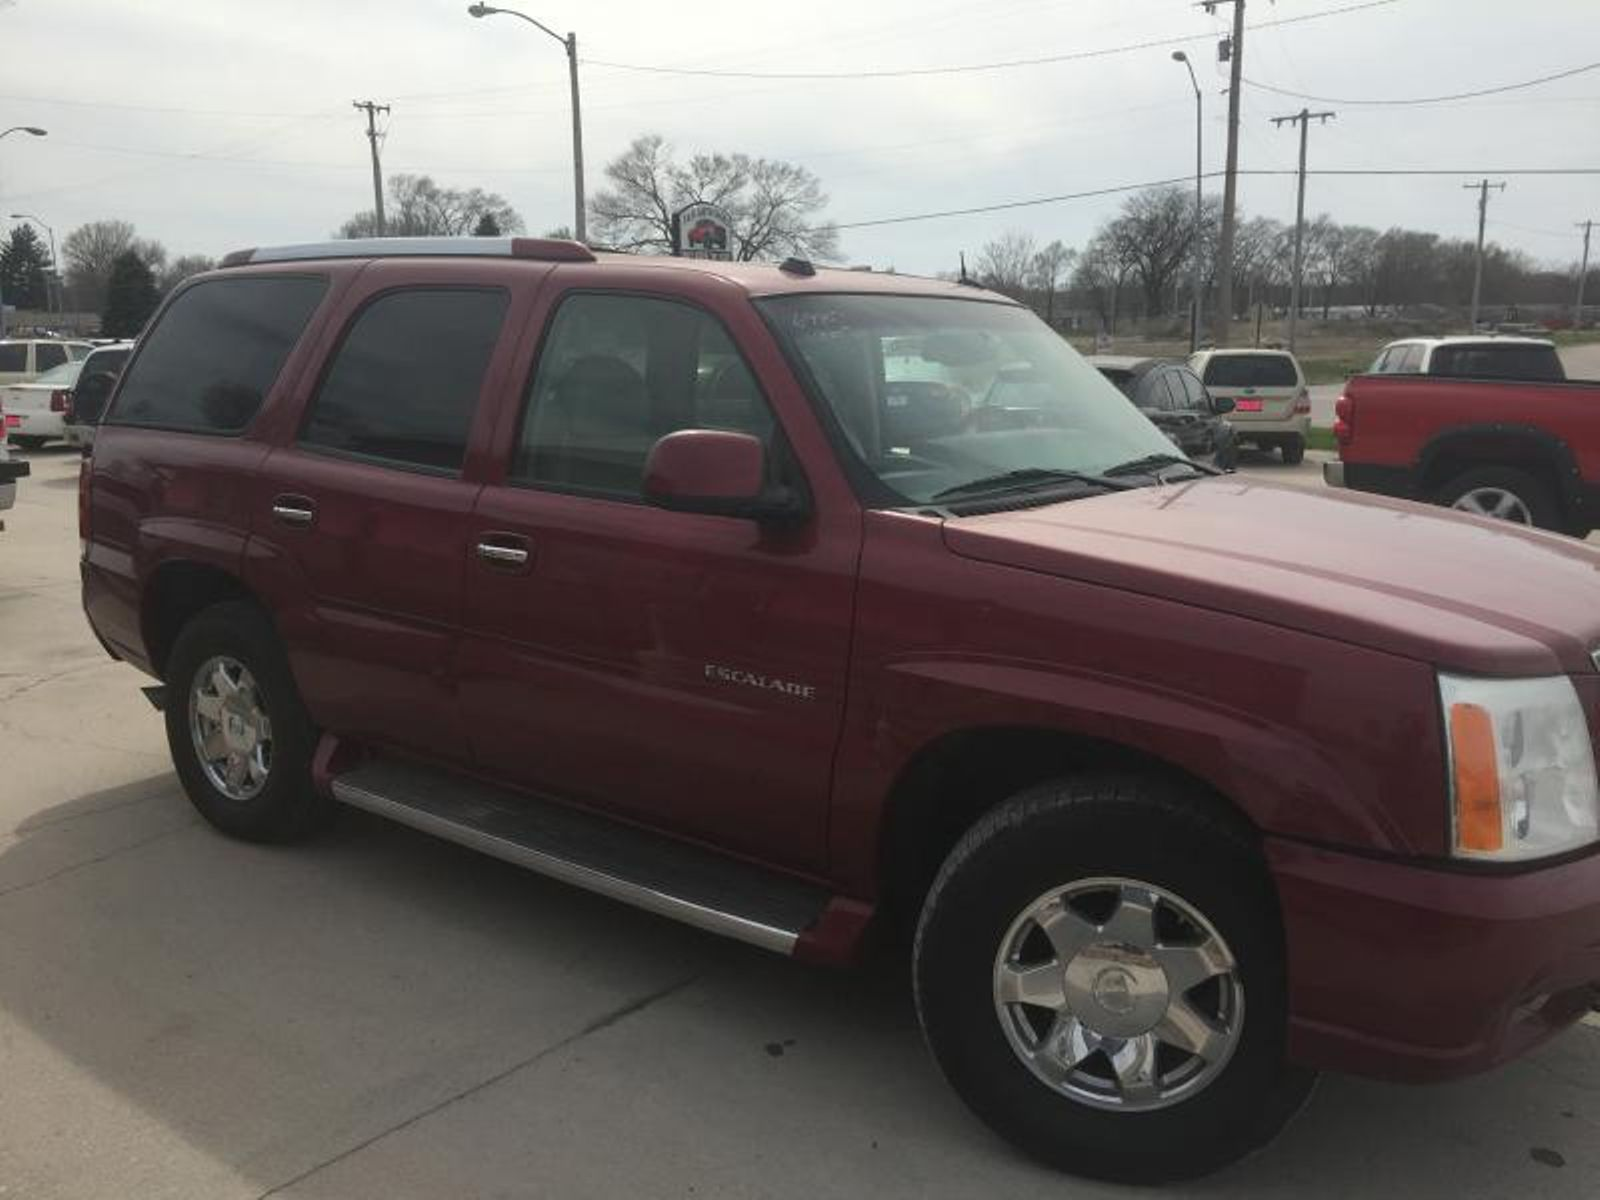 escalade sale for cars upon astounding design vehicles excited cadillac with and automotive together